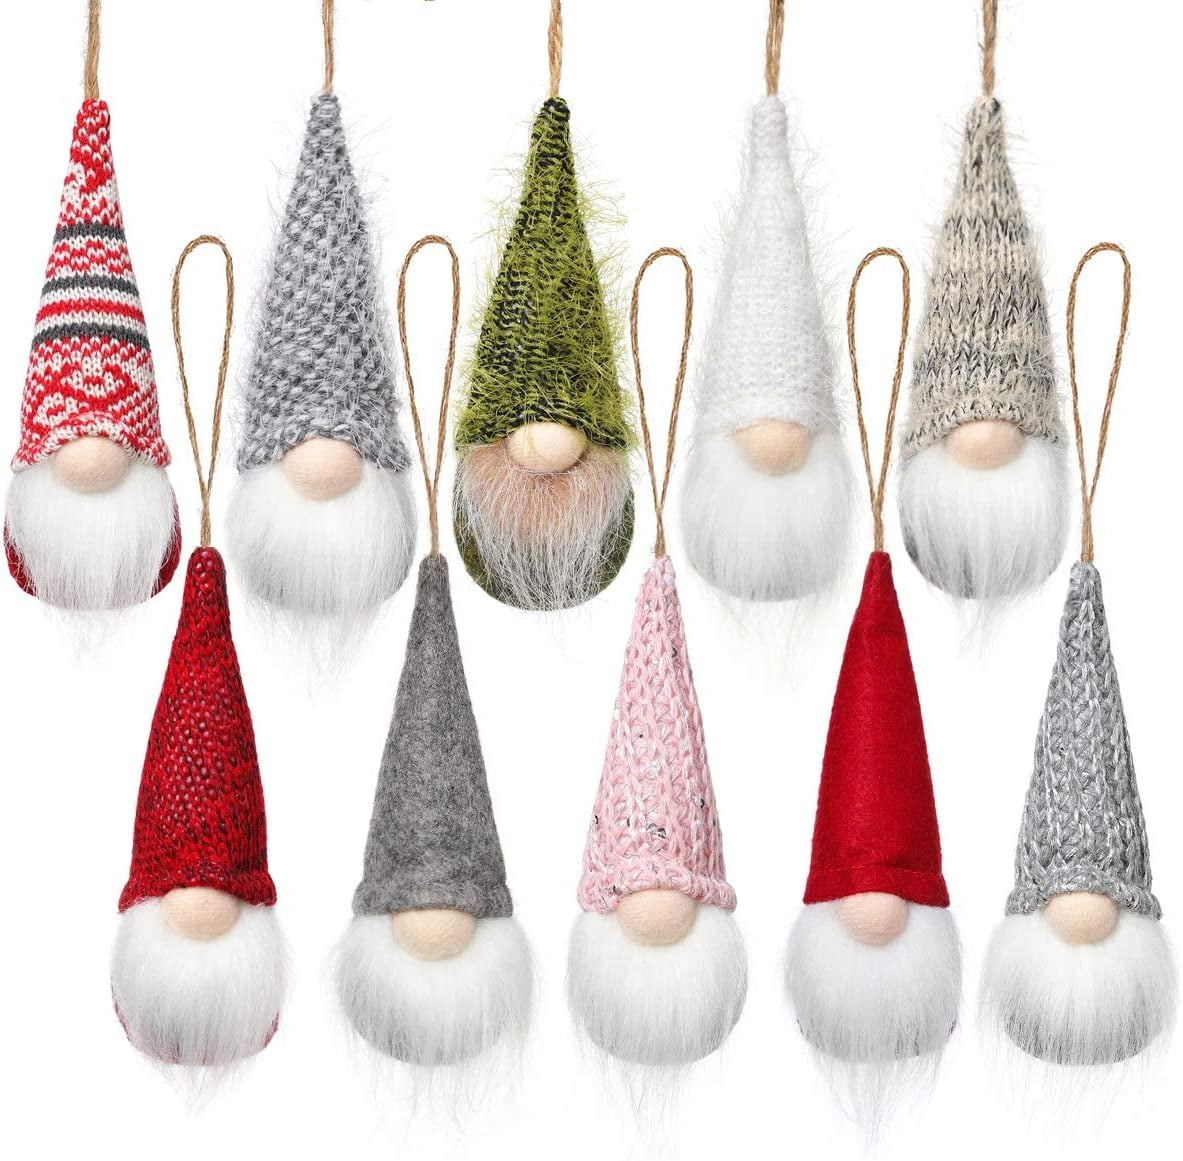 Gnome Christmas Decor Popsugar Home